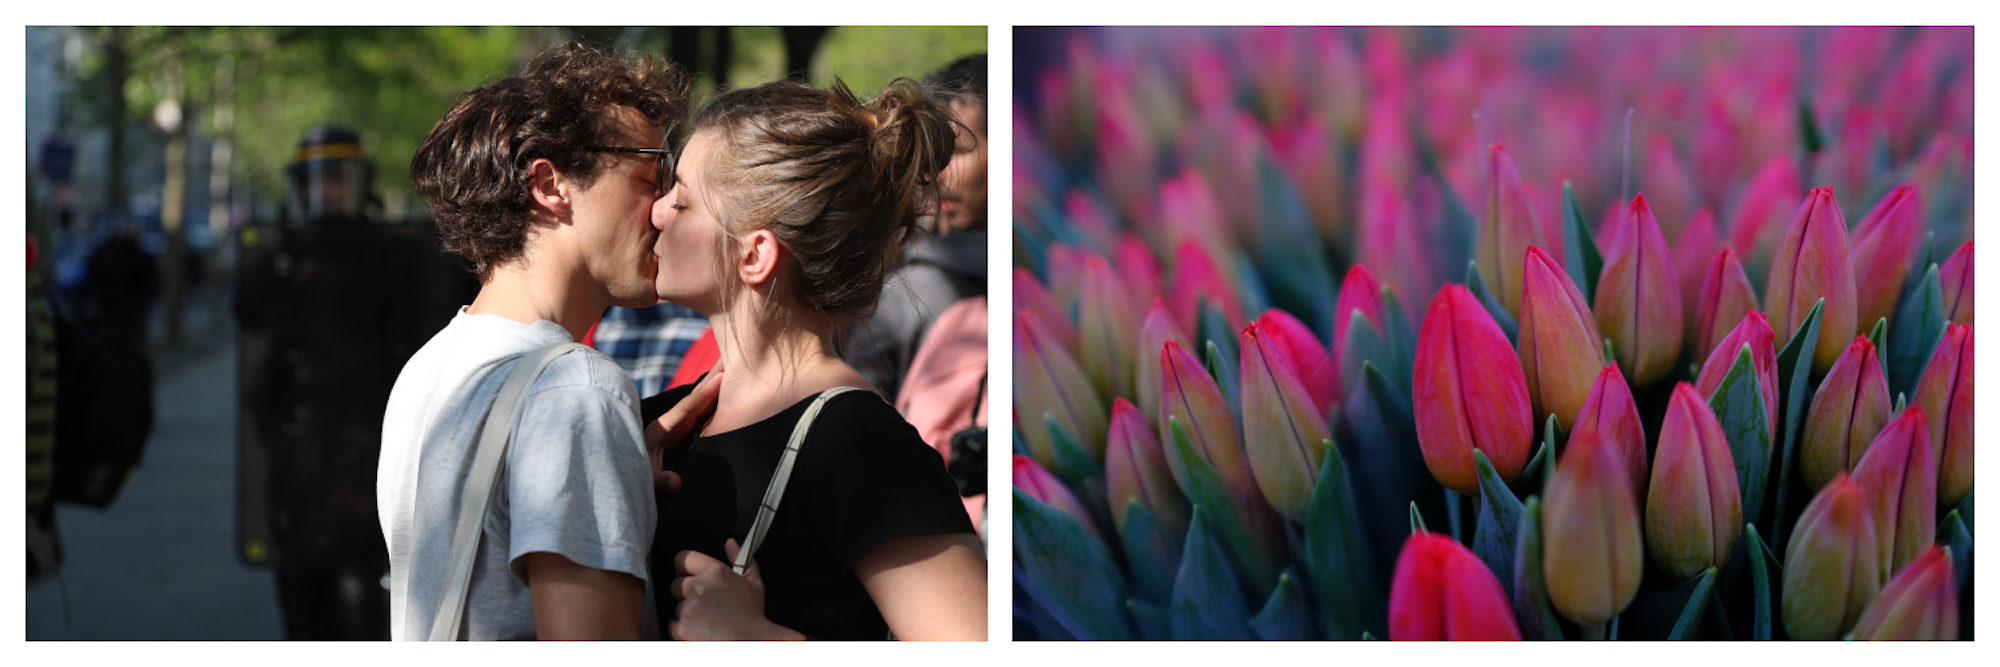 A couple in love kissing on the streets of Paris (left) and beautiful pink tulips on a flower stand in Paris on Valentine's Day (right).